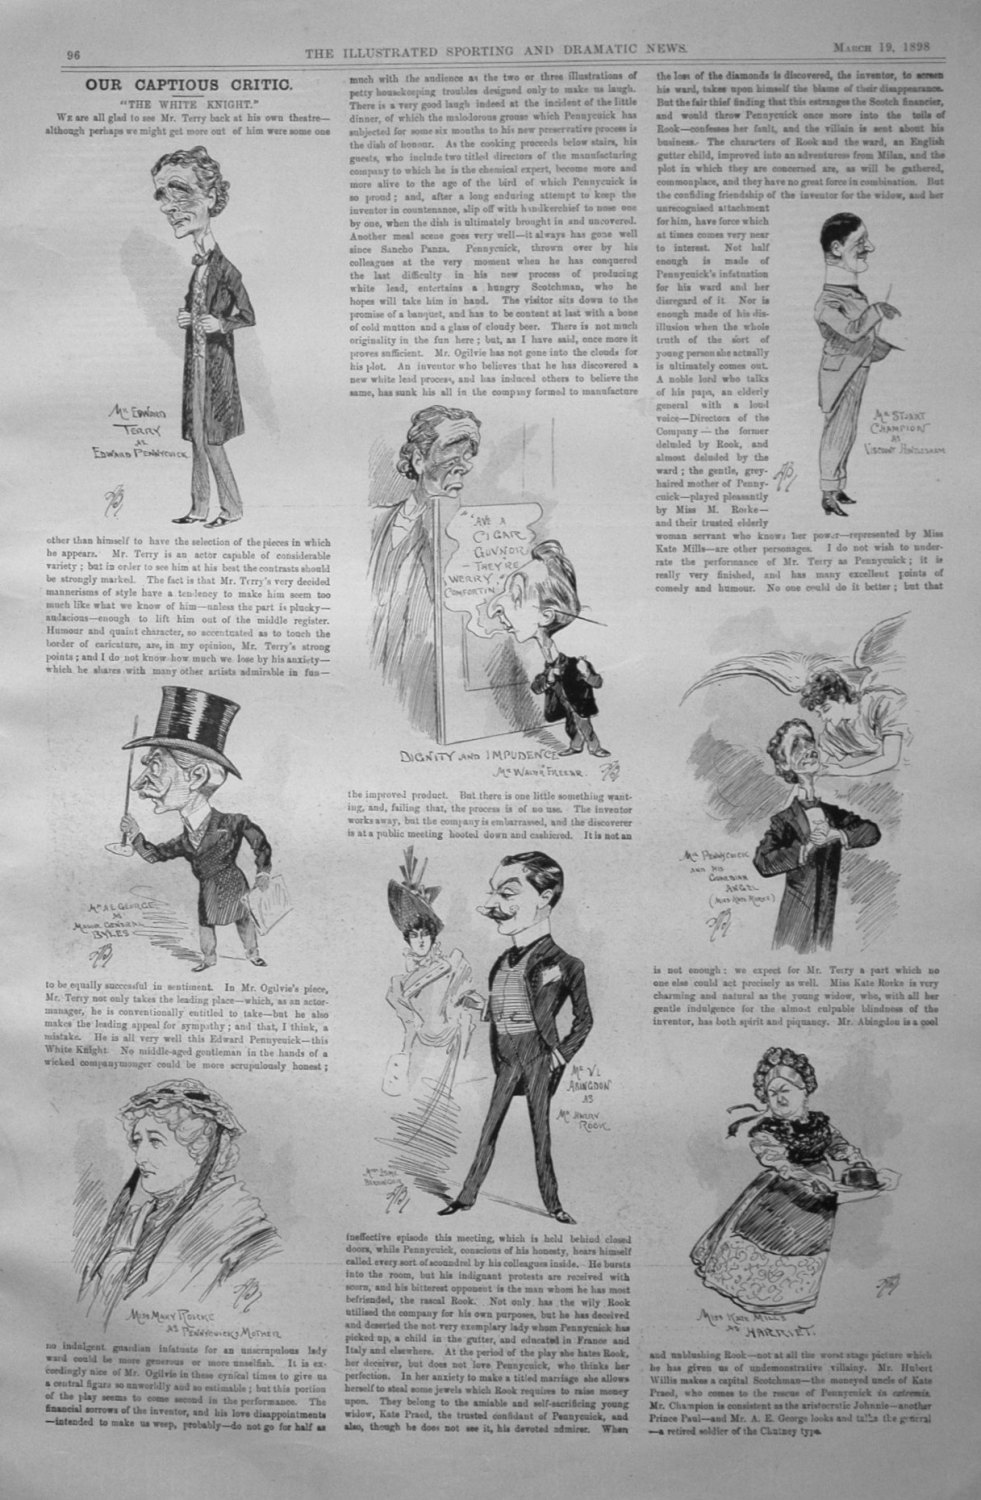 Our Captious Critic, March 19th 1898.